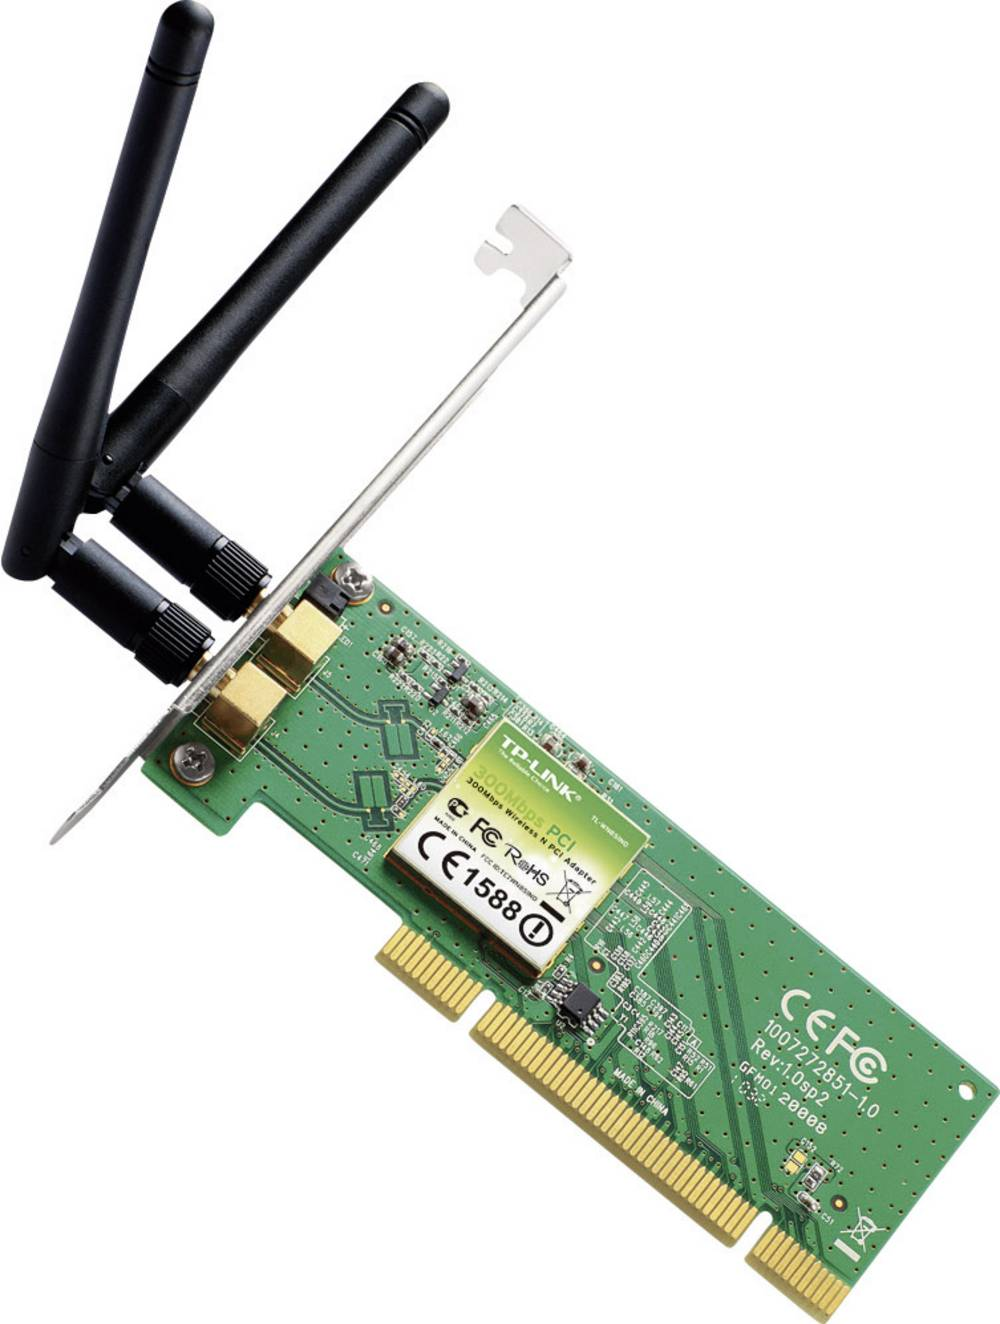 WLAN-adapter TP-Link TL-WN851ND, 300 Mbit/s, Wireless-N, PCI